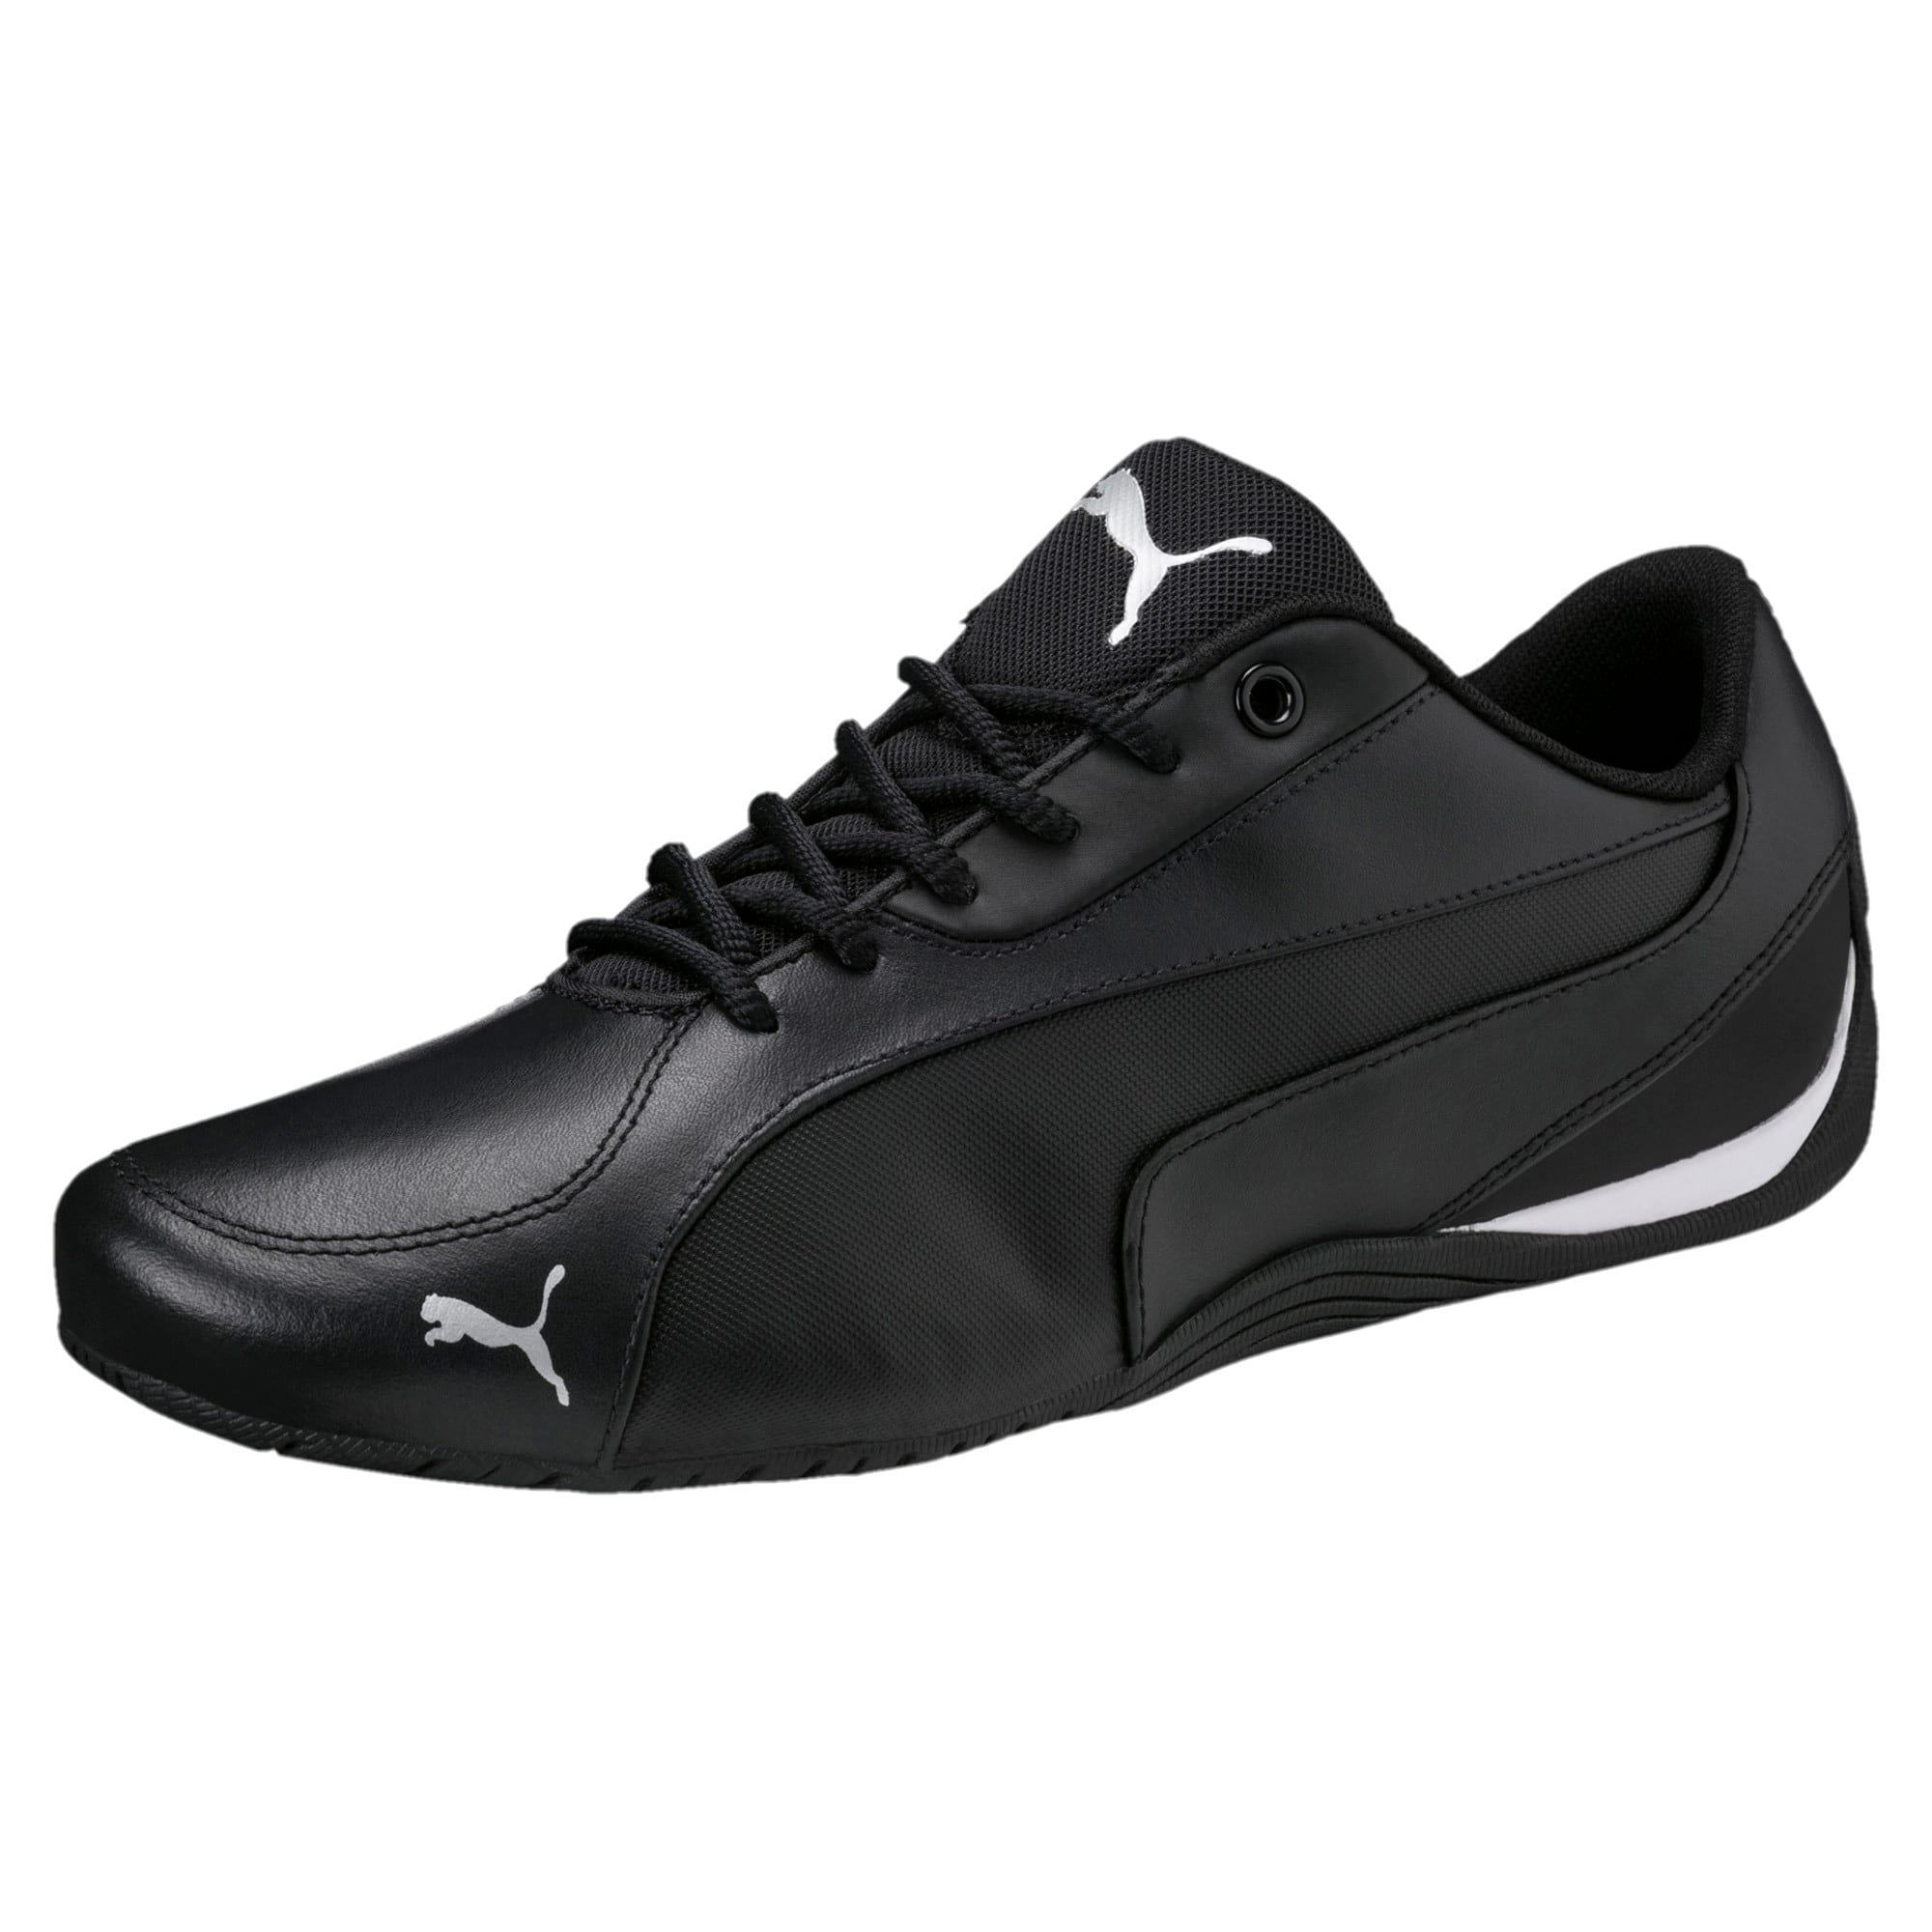 Miniatura 1 de Zapatos Drift Cat 5 Core para hombre, Puma Black, mediano